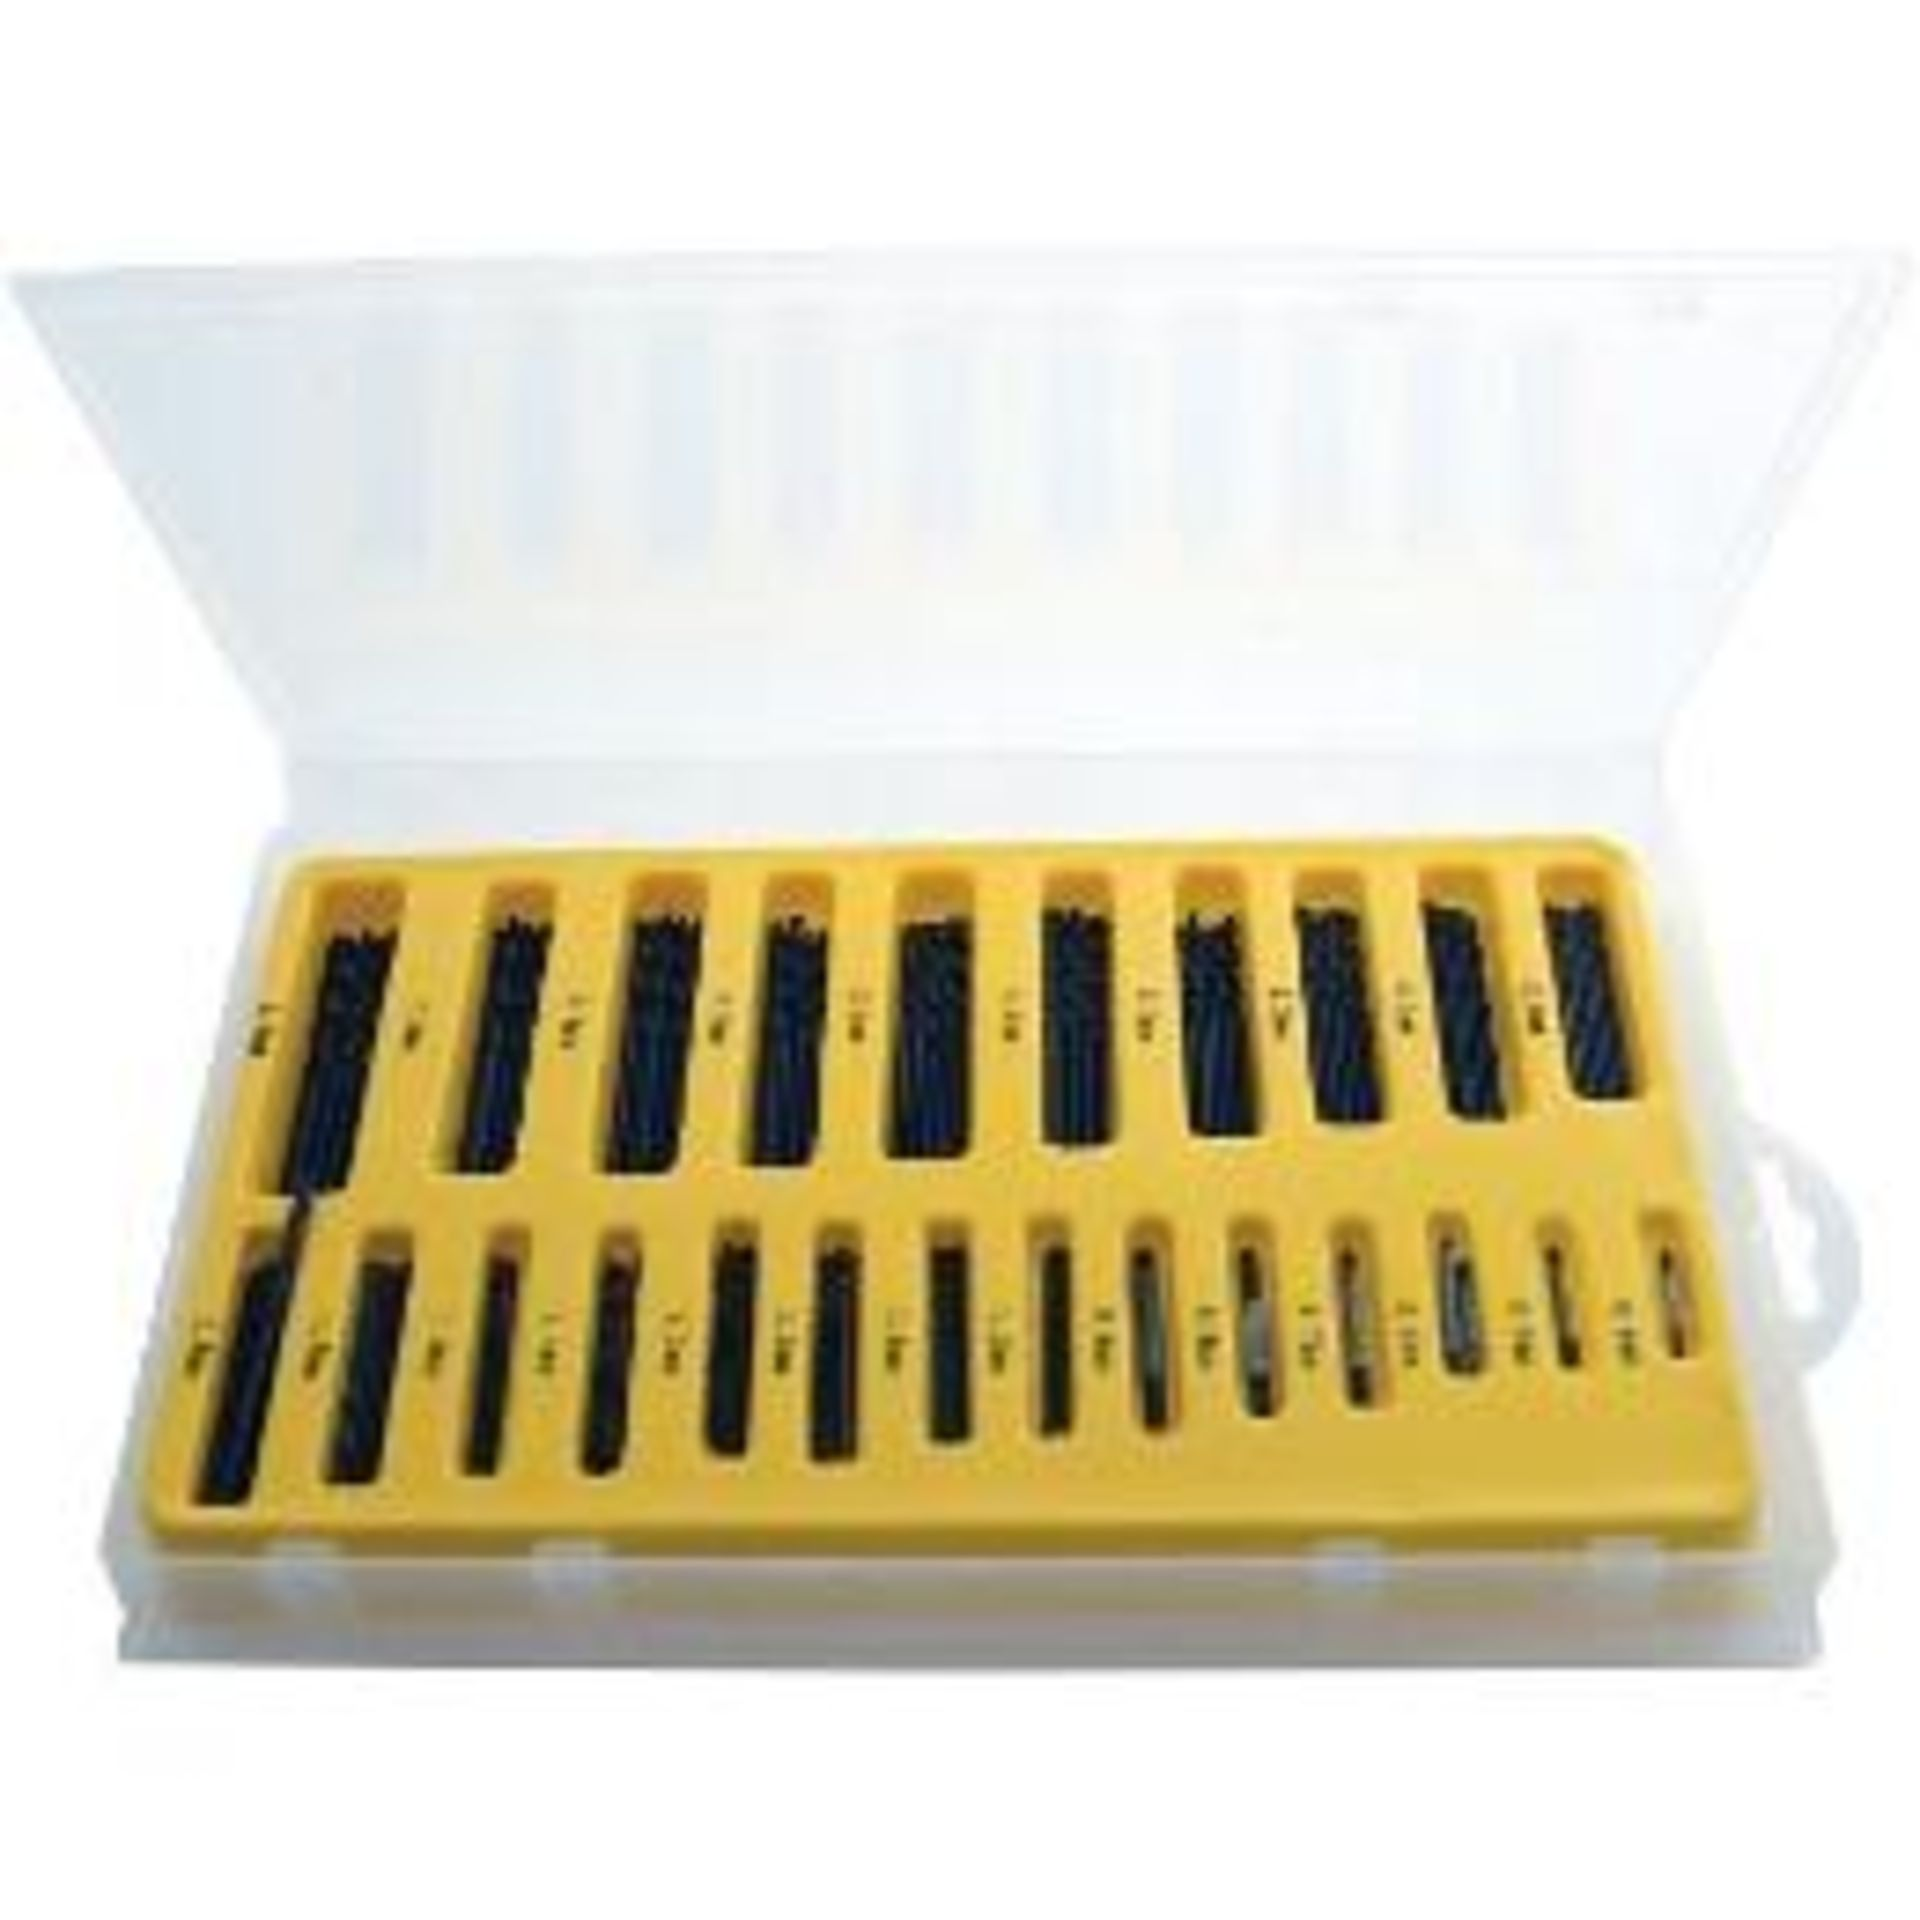 Lot 13613 - V Brand New 150 Piece Assorted Drill Bit Set - Sizes Ranging From 0.4mm to 3.2mm